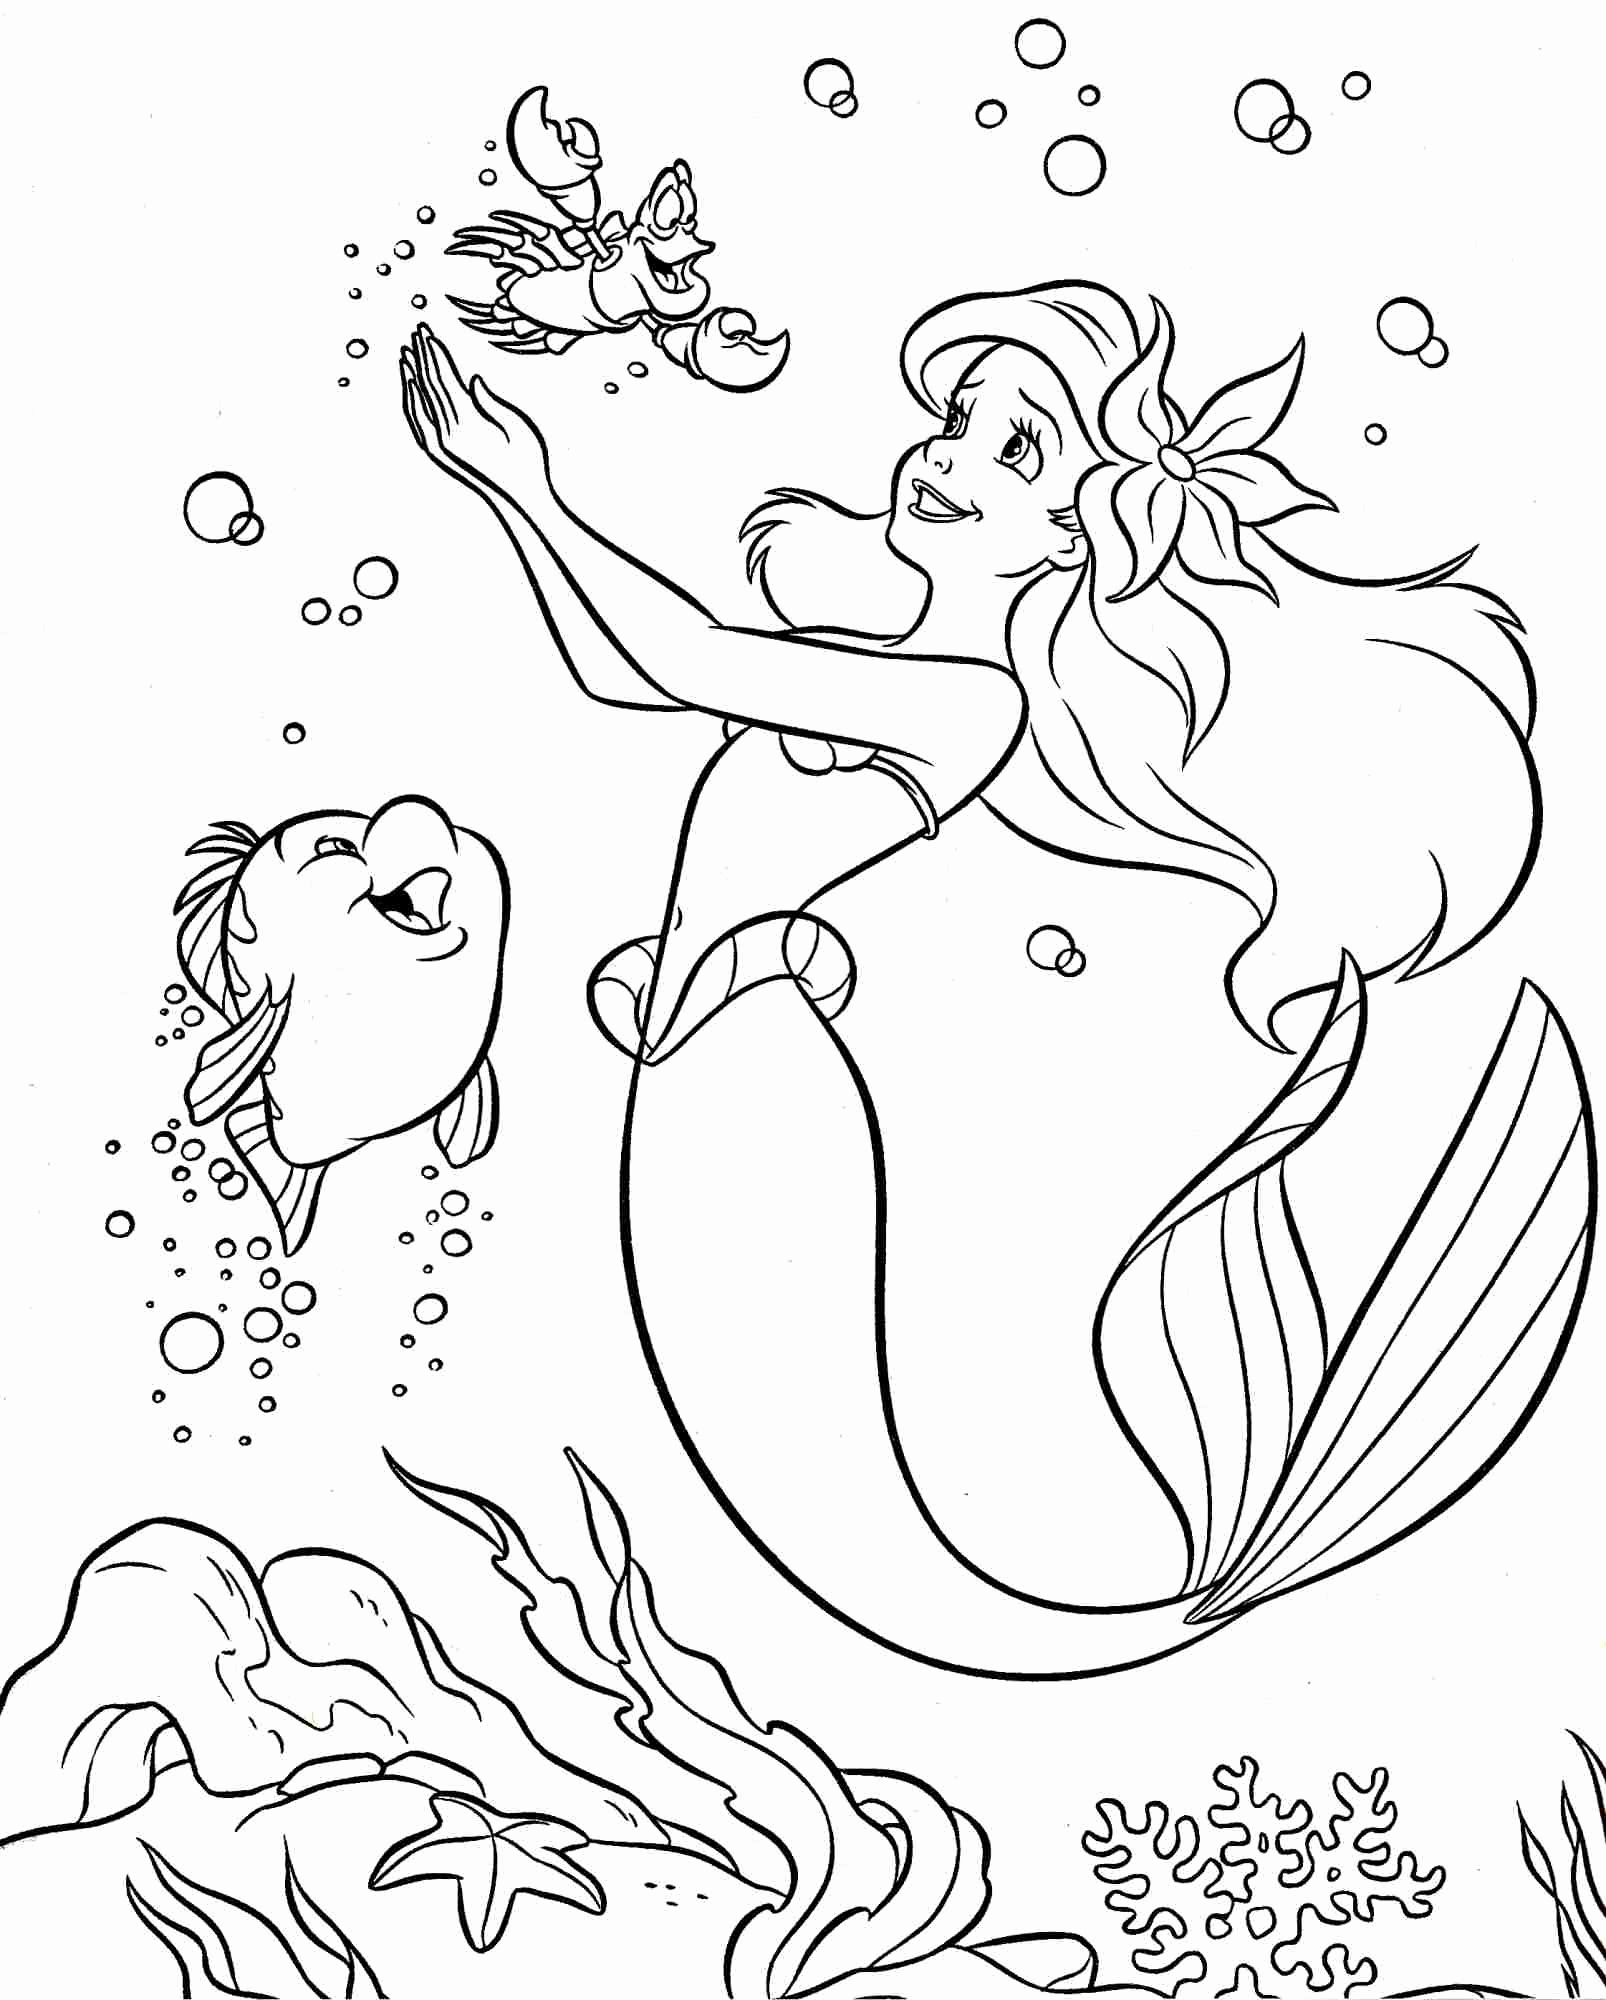 Descendants 2 Uma Coloring Pages at GetDrawings | Free ...